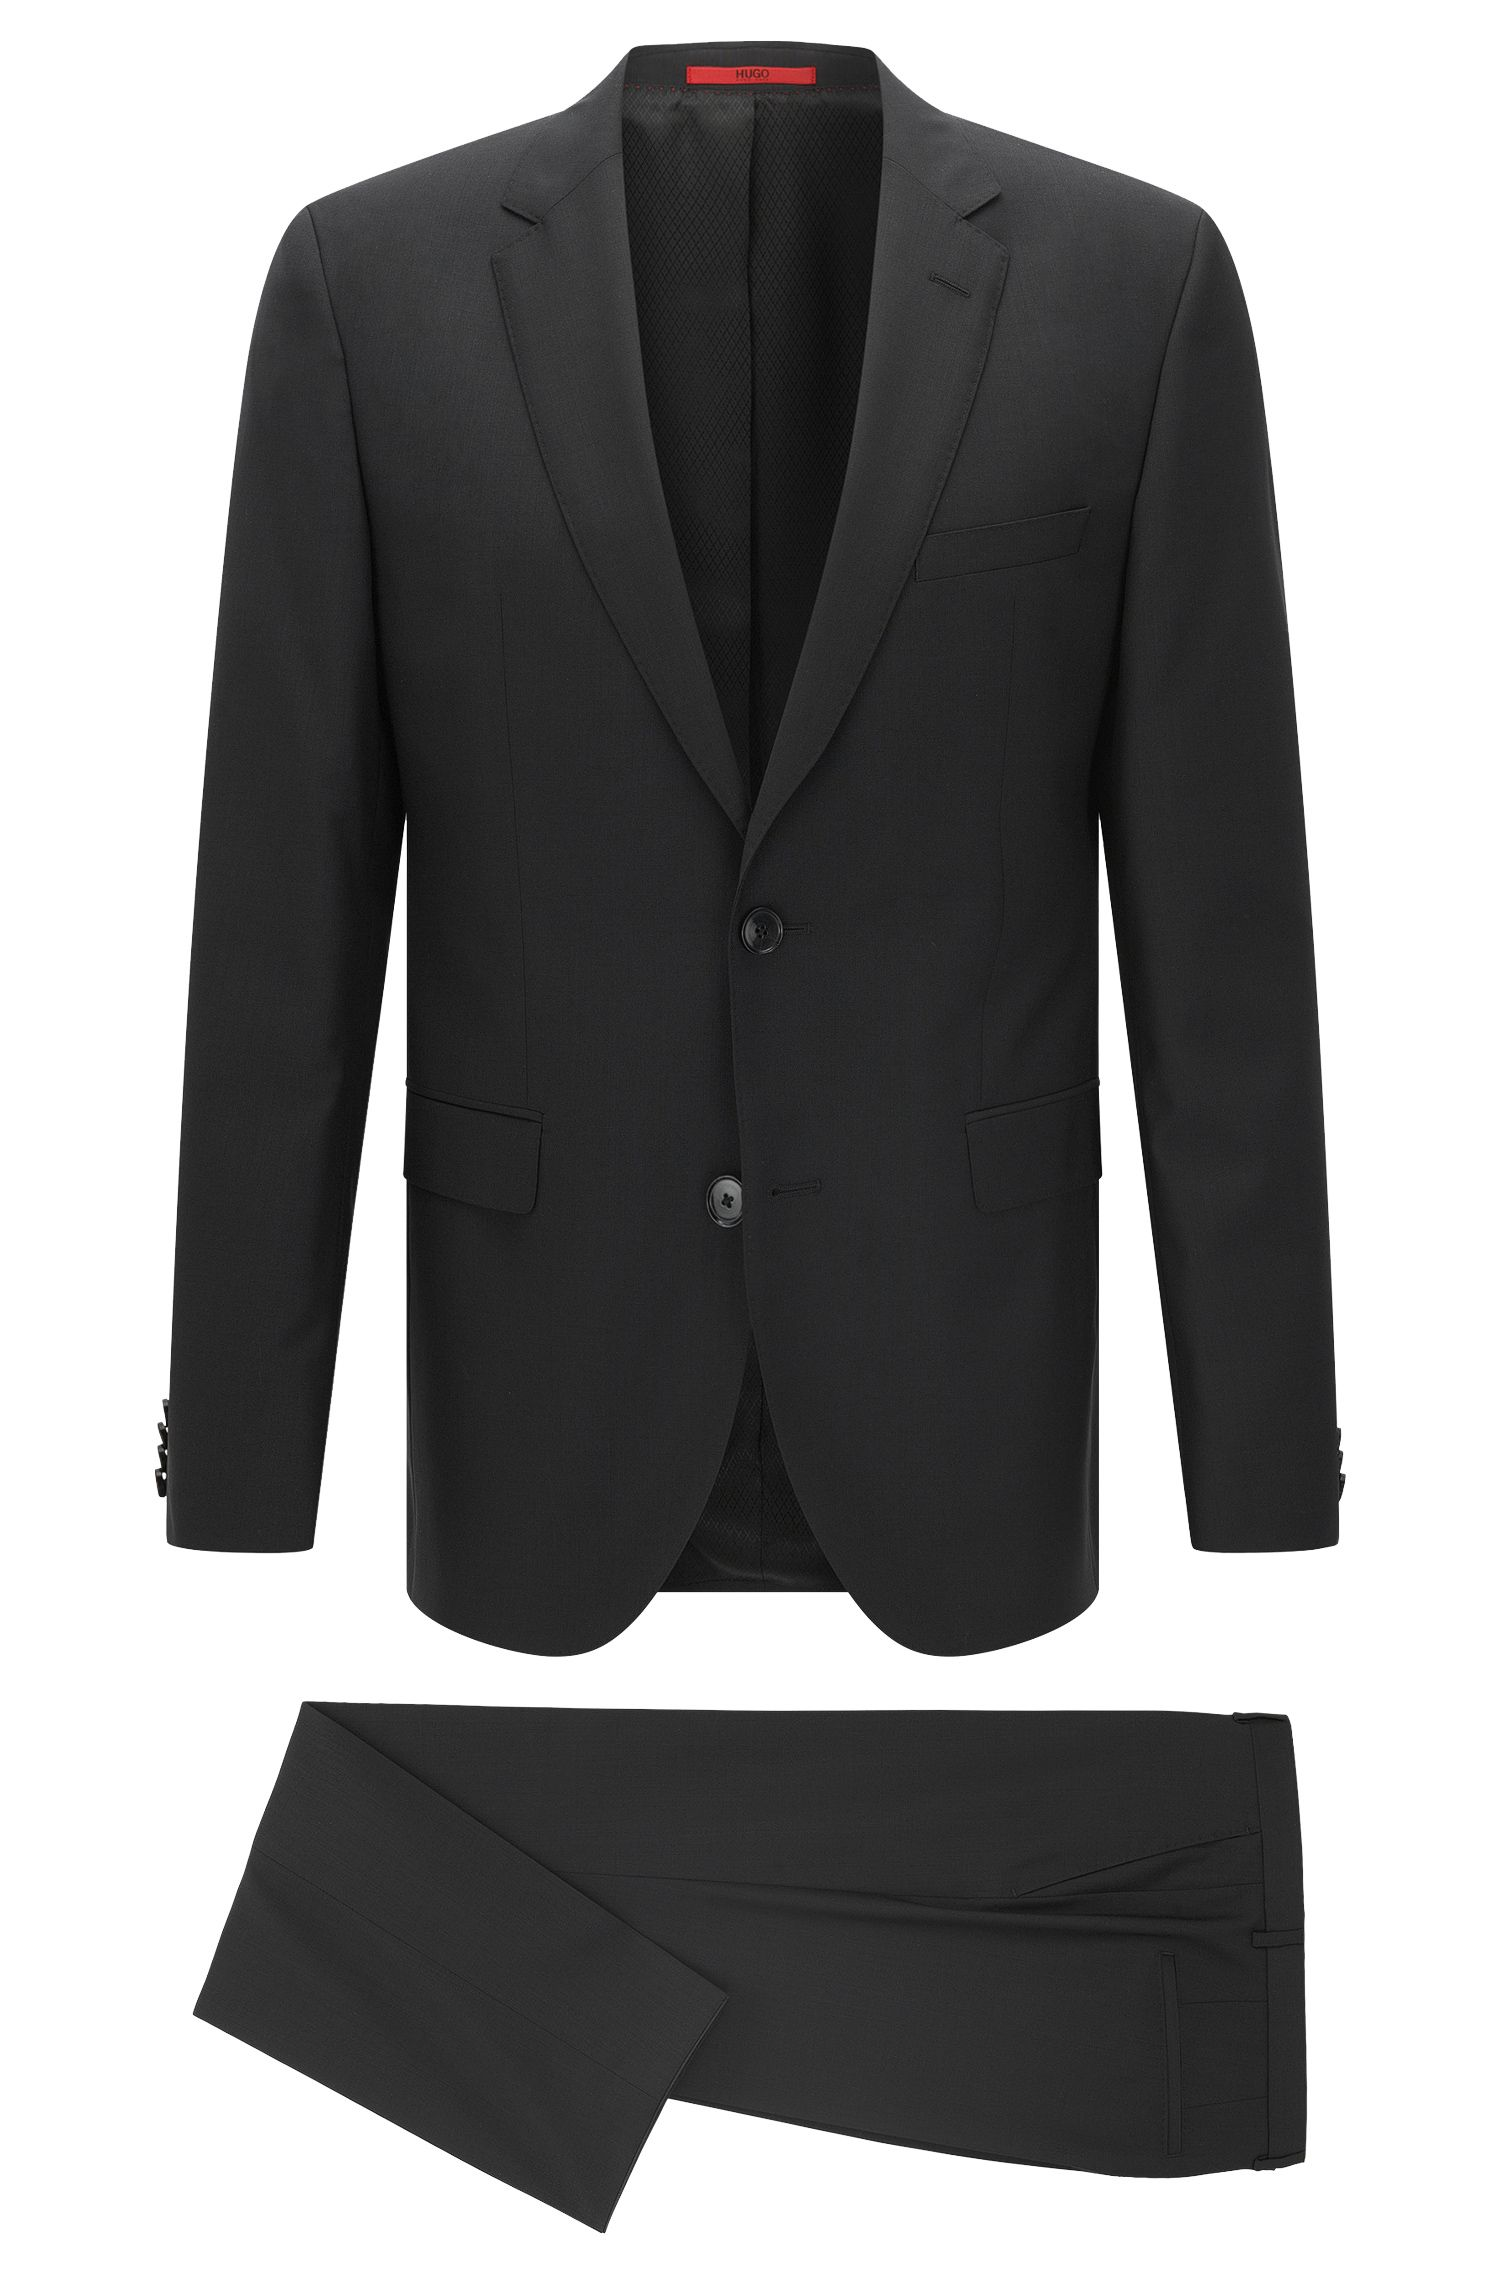 Virgin Wool Suit, Slim Fit | C-Jeffrey/C-Simmons, Black